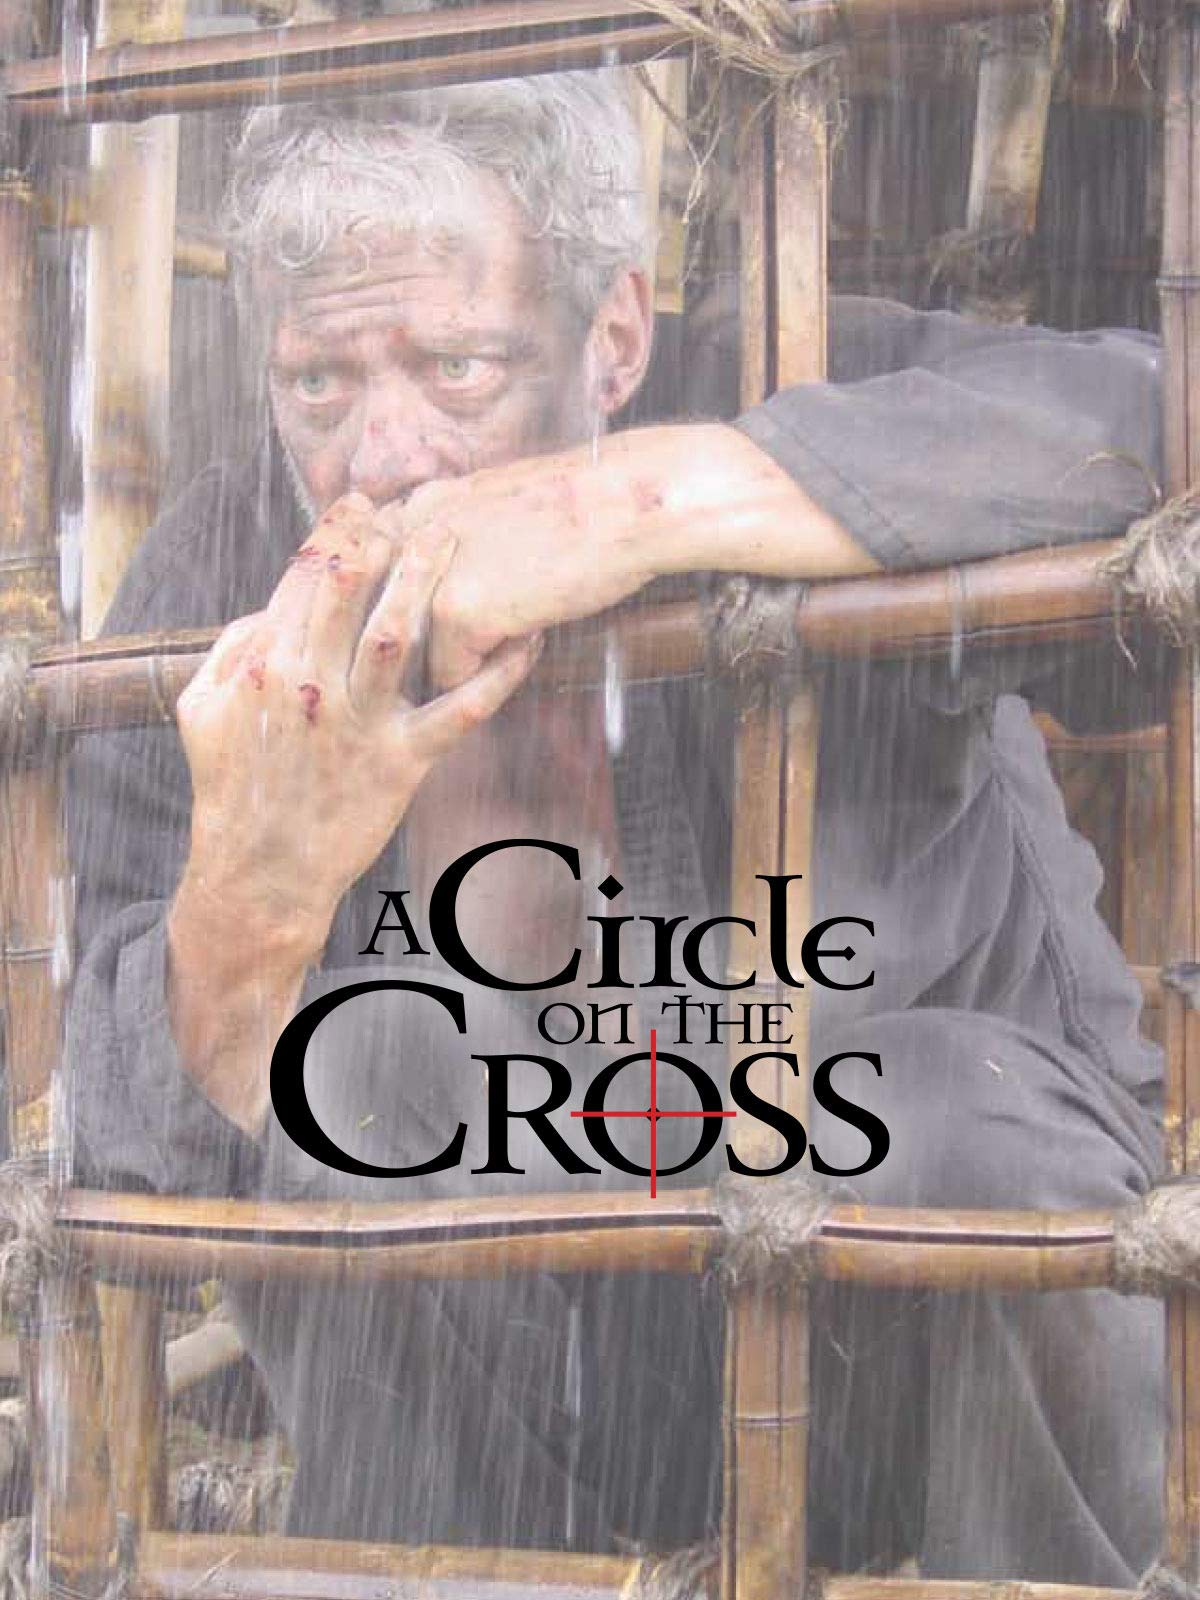 A Circle on the Cross